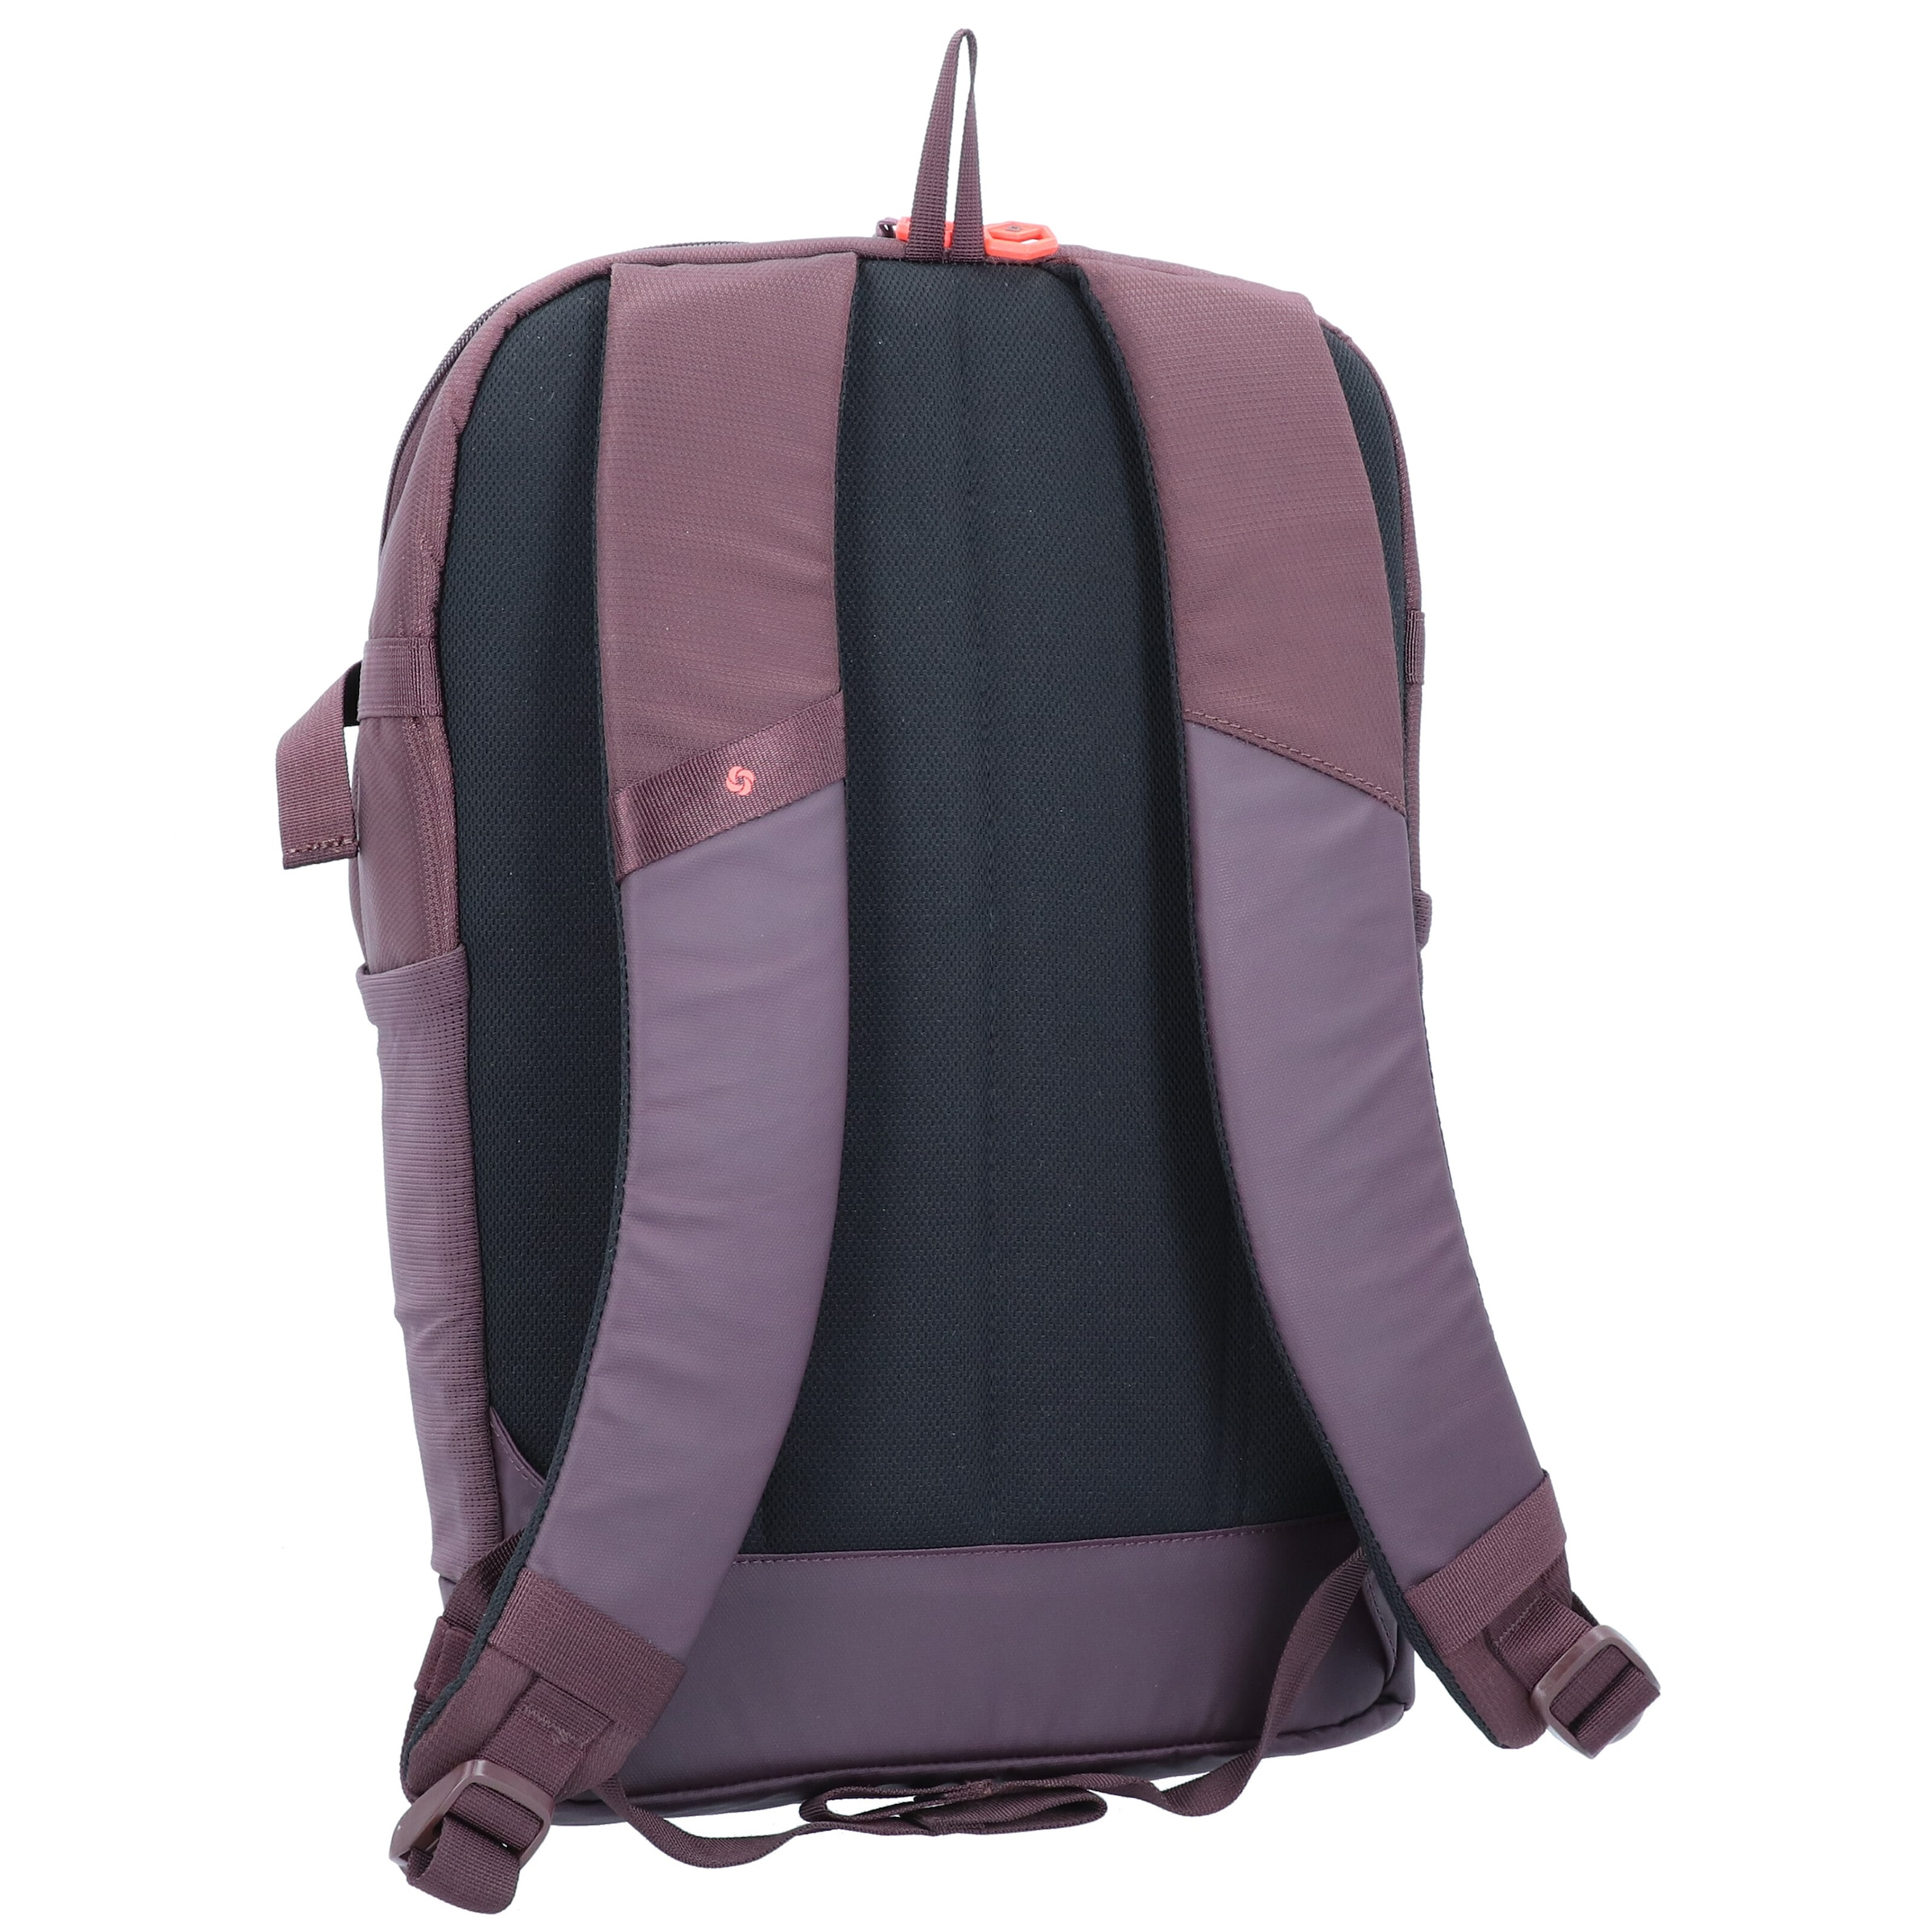 'hexa packs' Lila Samsonite Rucksack In OTZuPXkwi